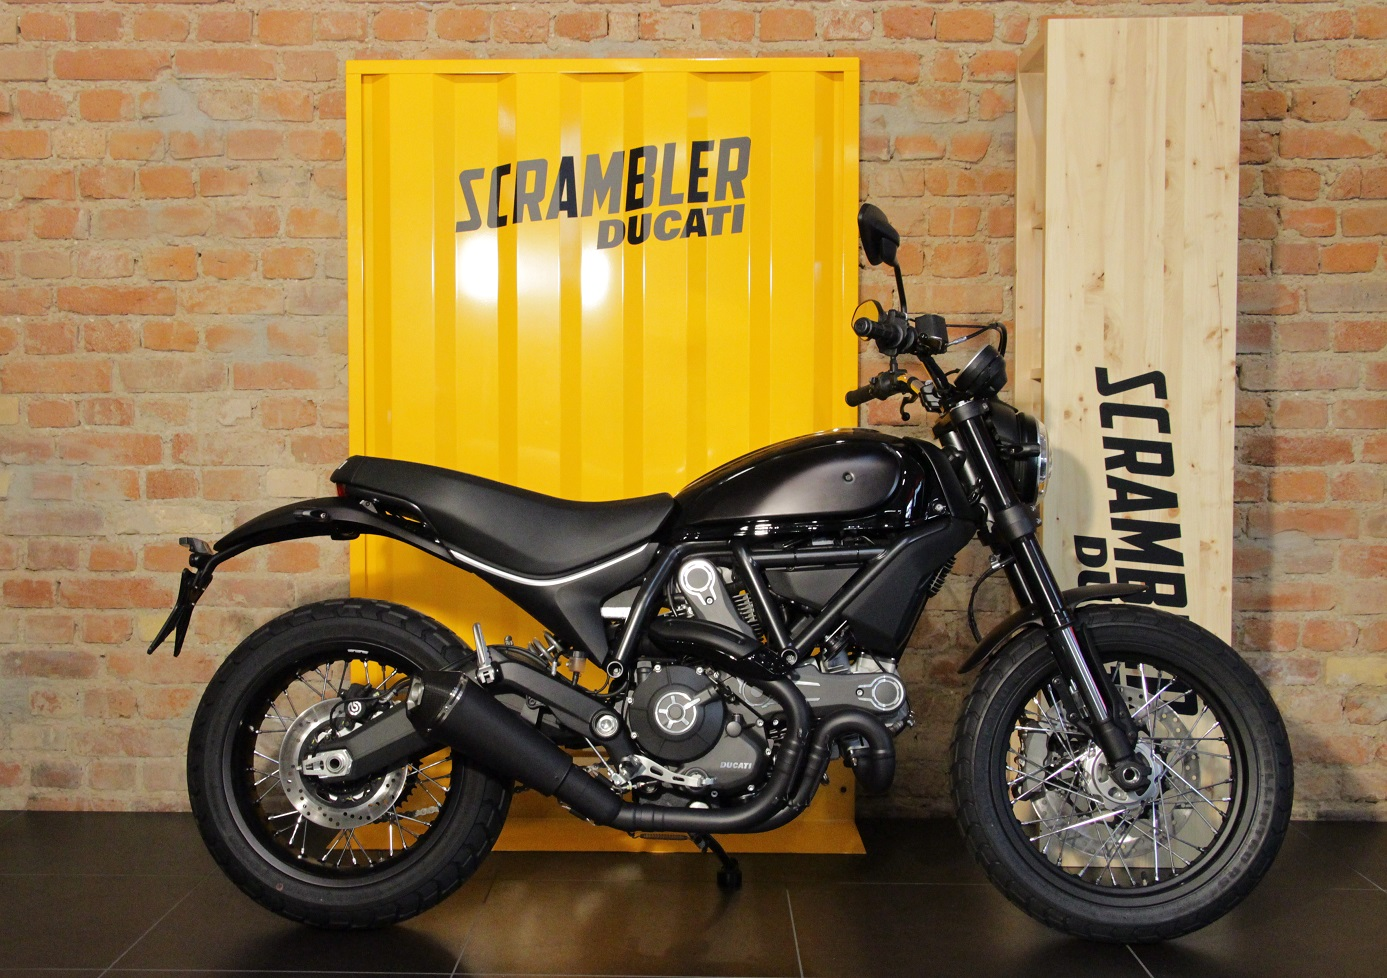 ducati leipzig scrambler special. Black Bedroom Furniture Sets. Home Design Ideas